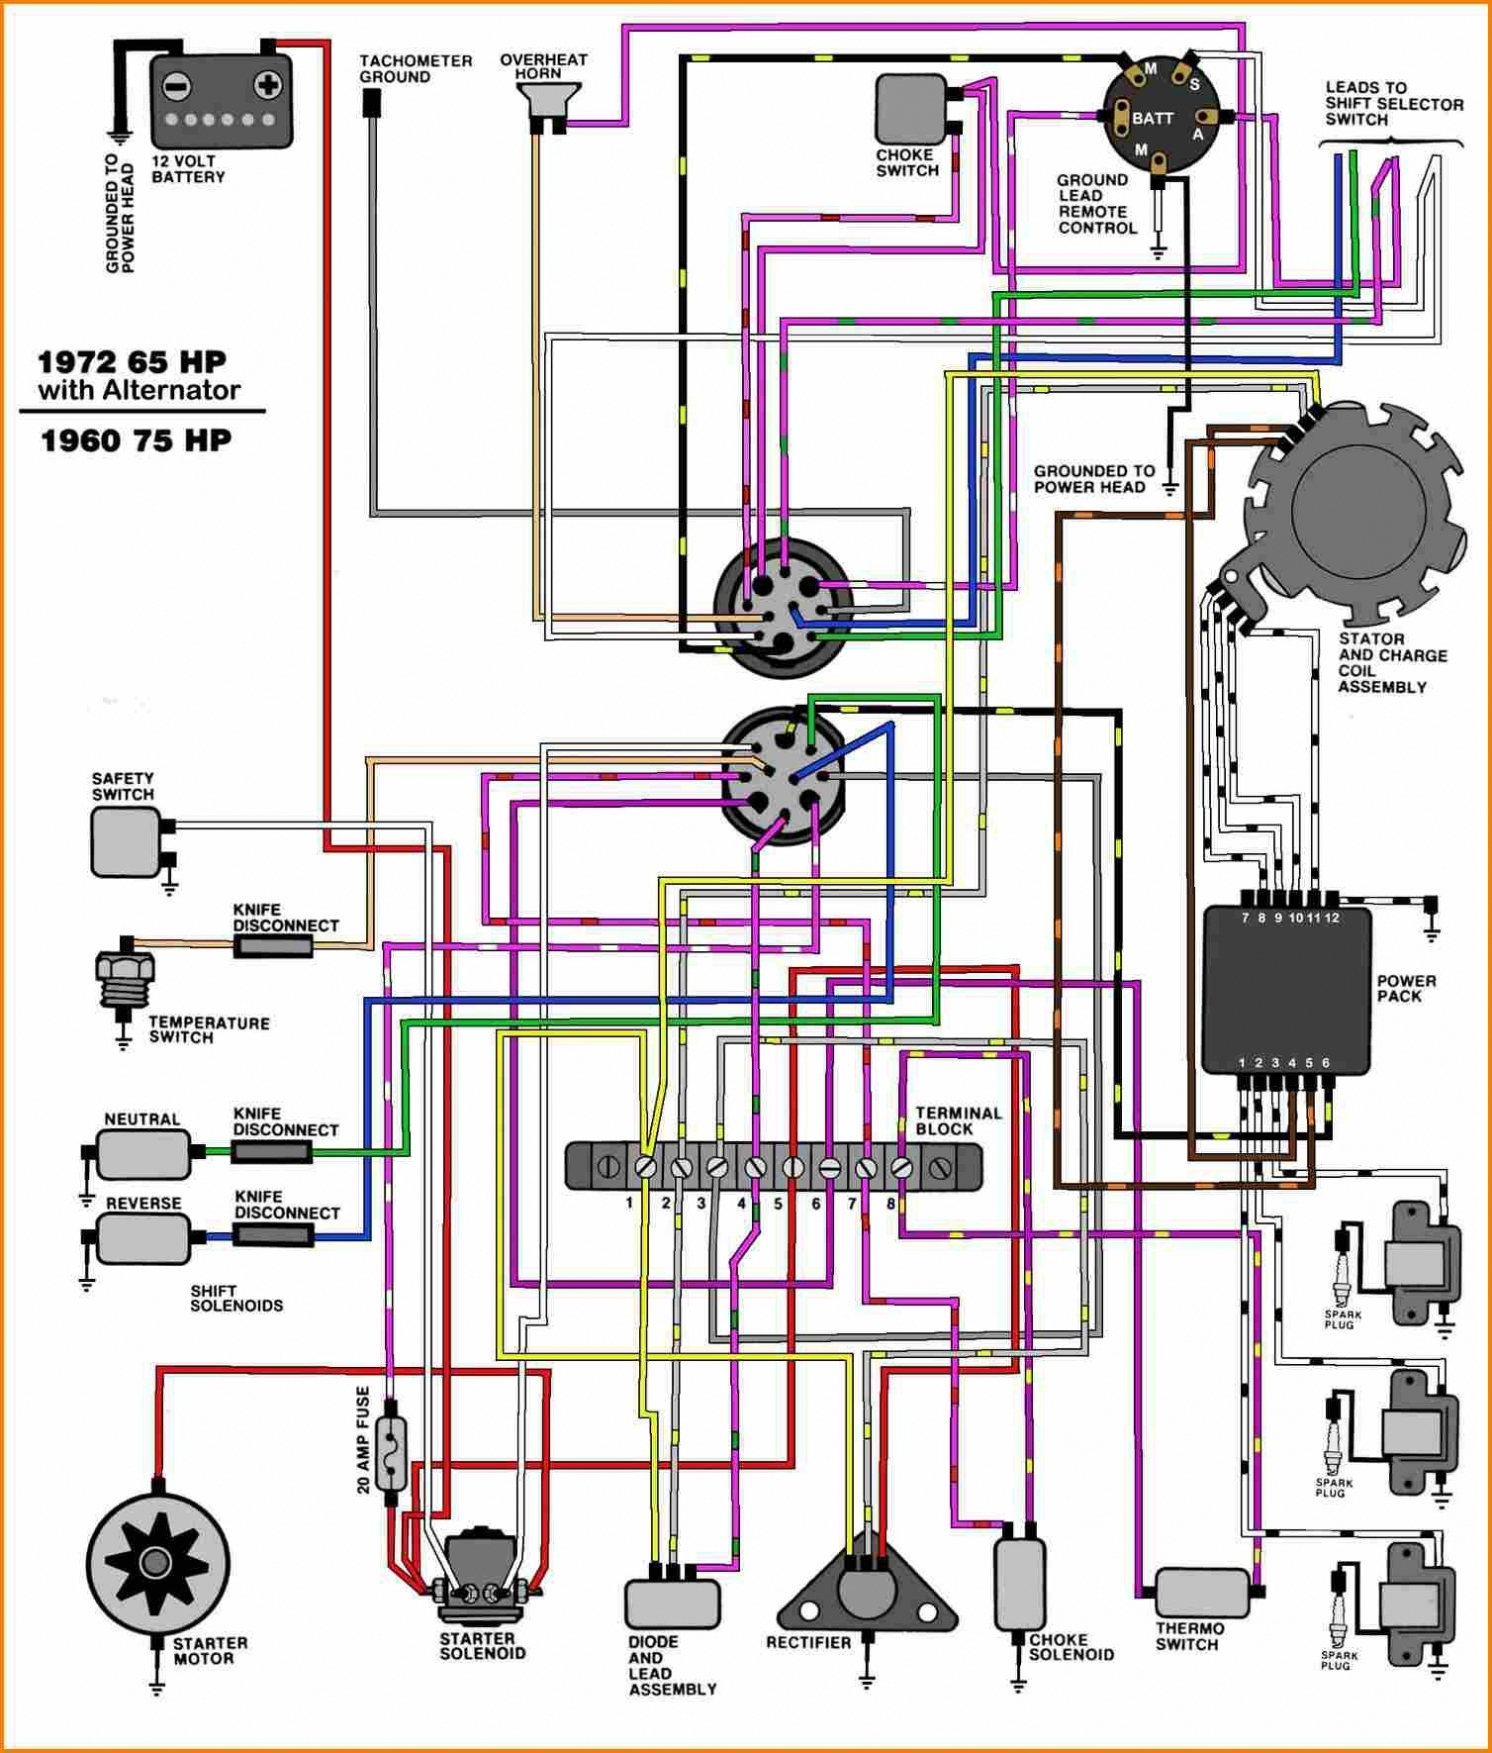 50 Hp Johnson Outboard 1973 Wiring Diagram Anything Wiring Diagrams - Johnson Outboard Wiring Diagram Pdf